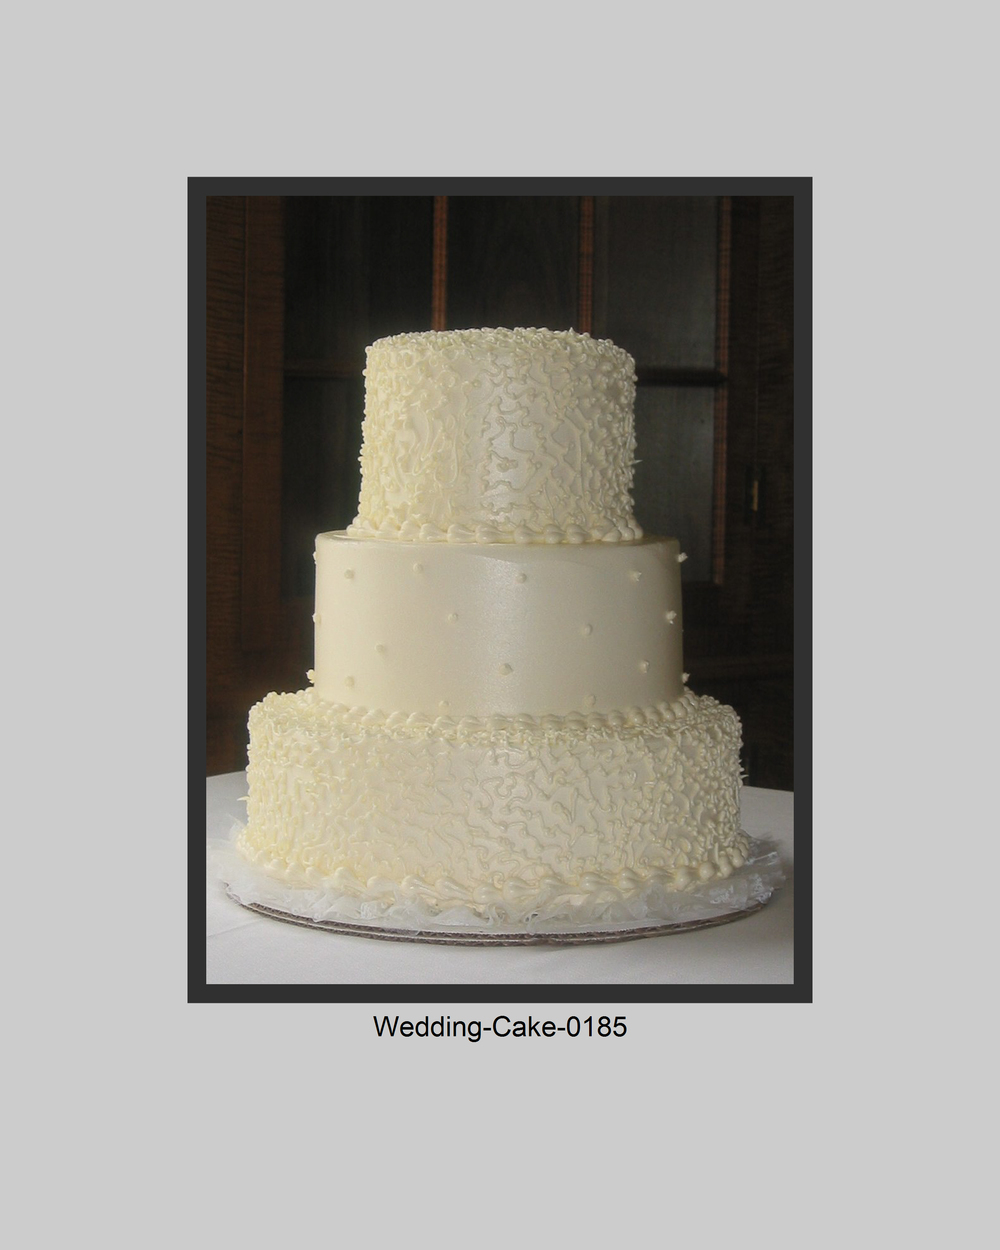 Wedding-Cake-Prints-0185.jpg